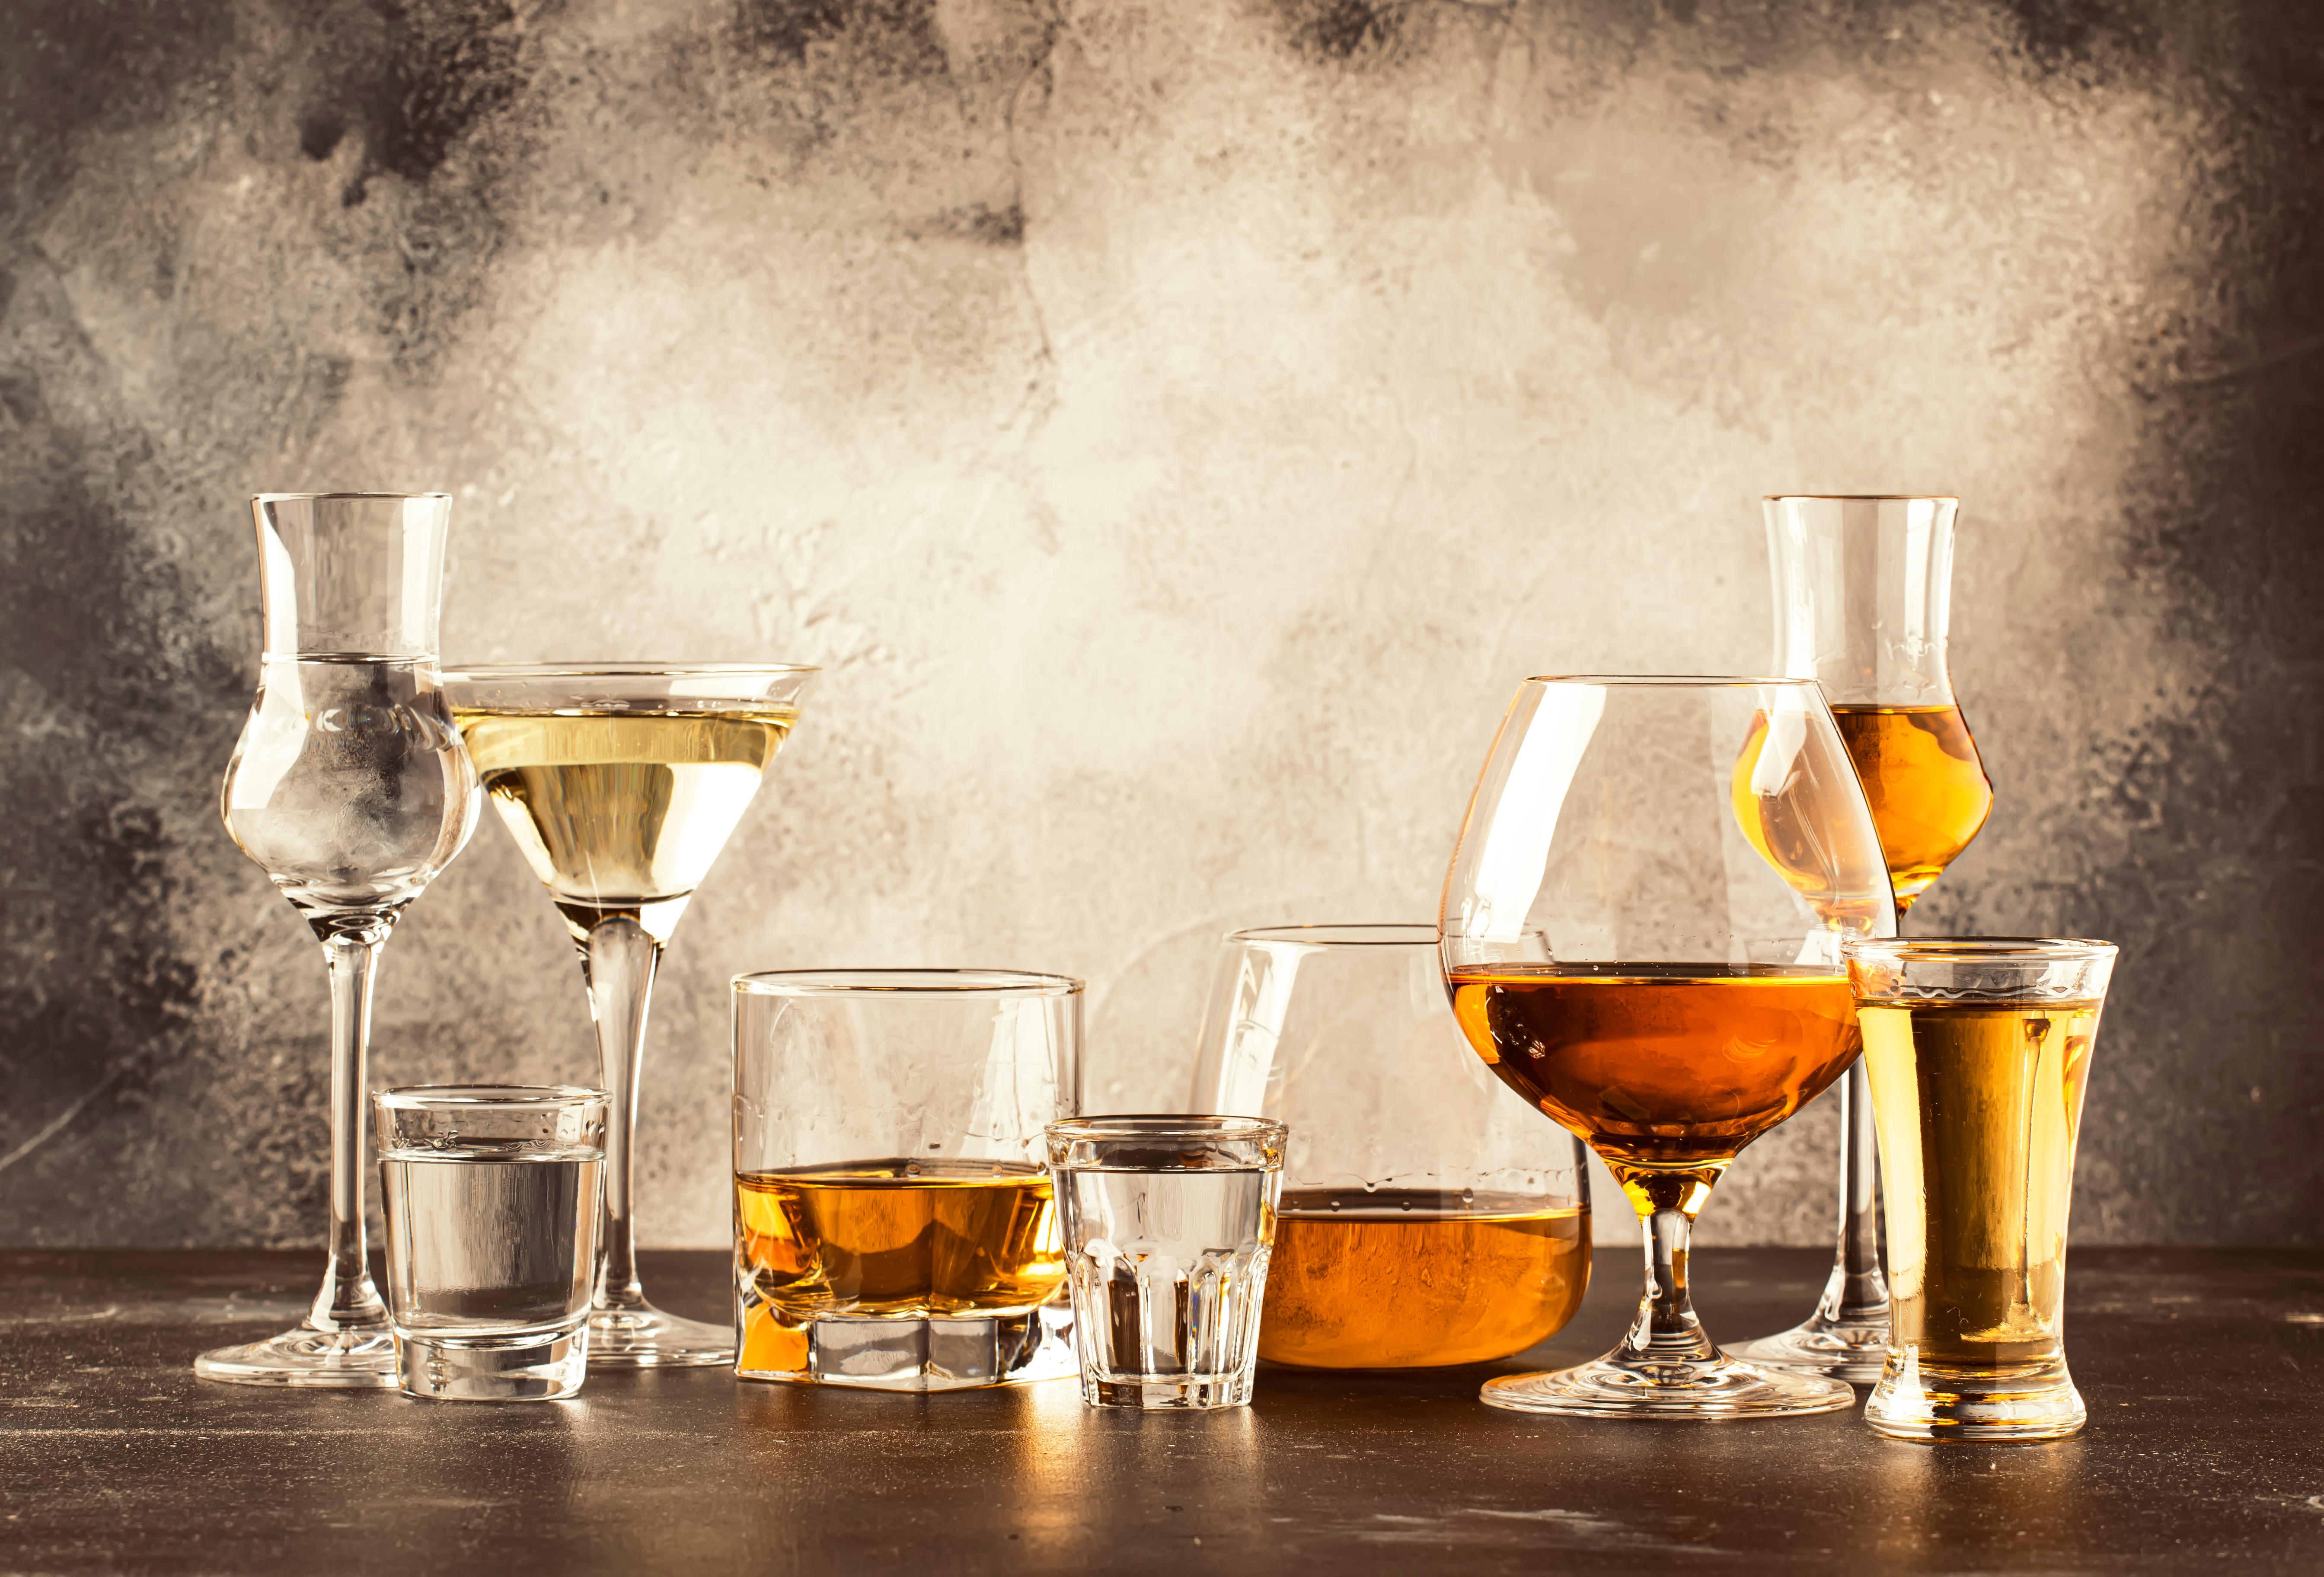 Set,Of,Strong,Alcoholic,Drinks,In,Glasses,In,Assortment:,Vodka,